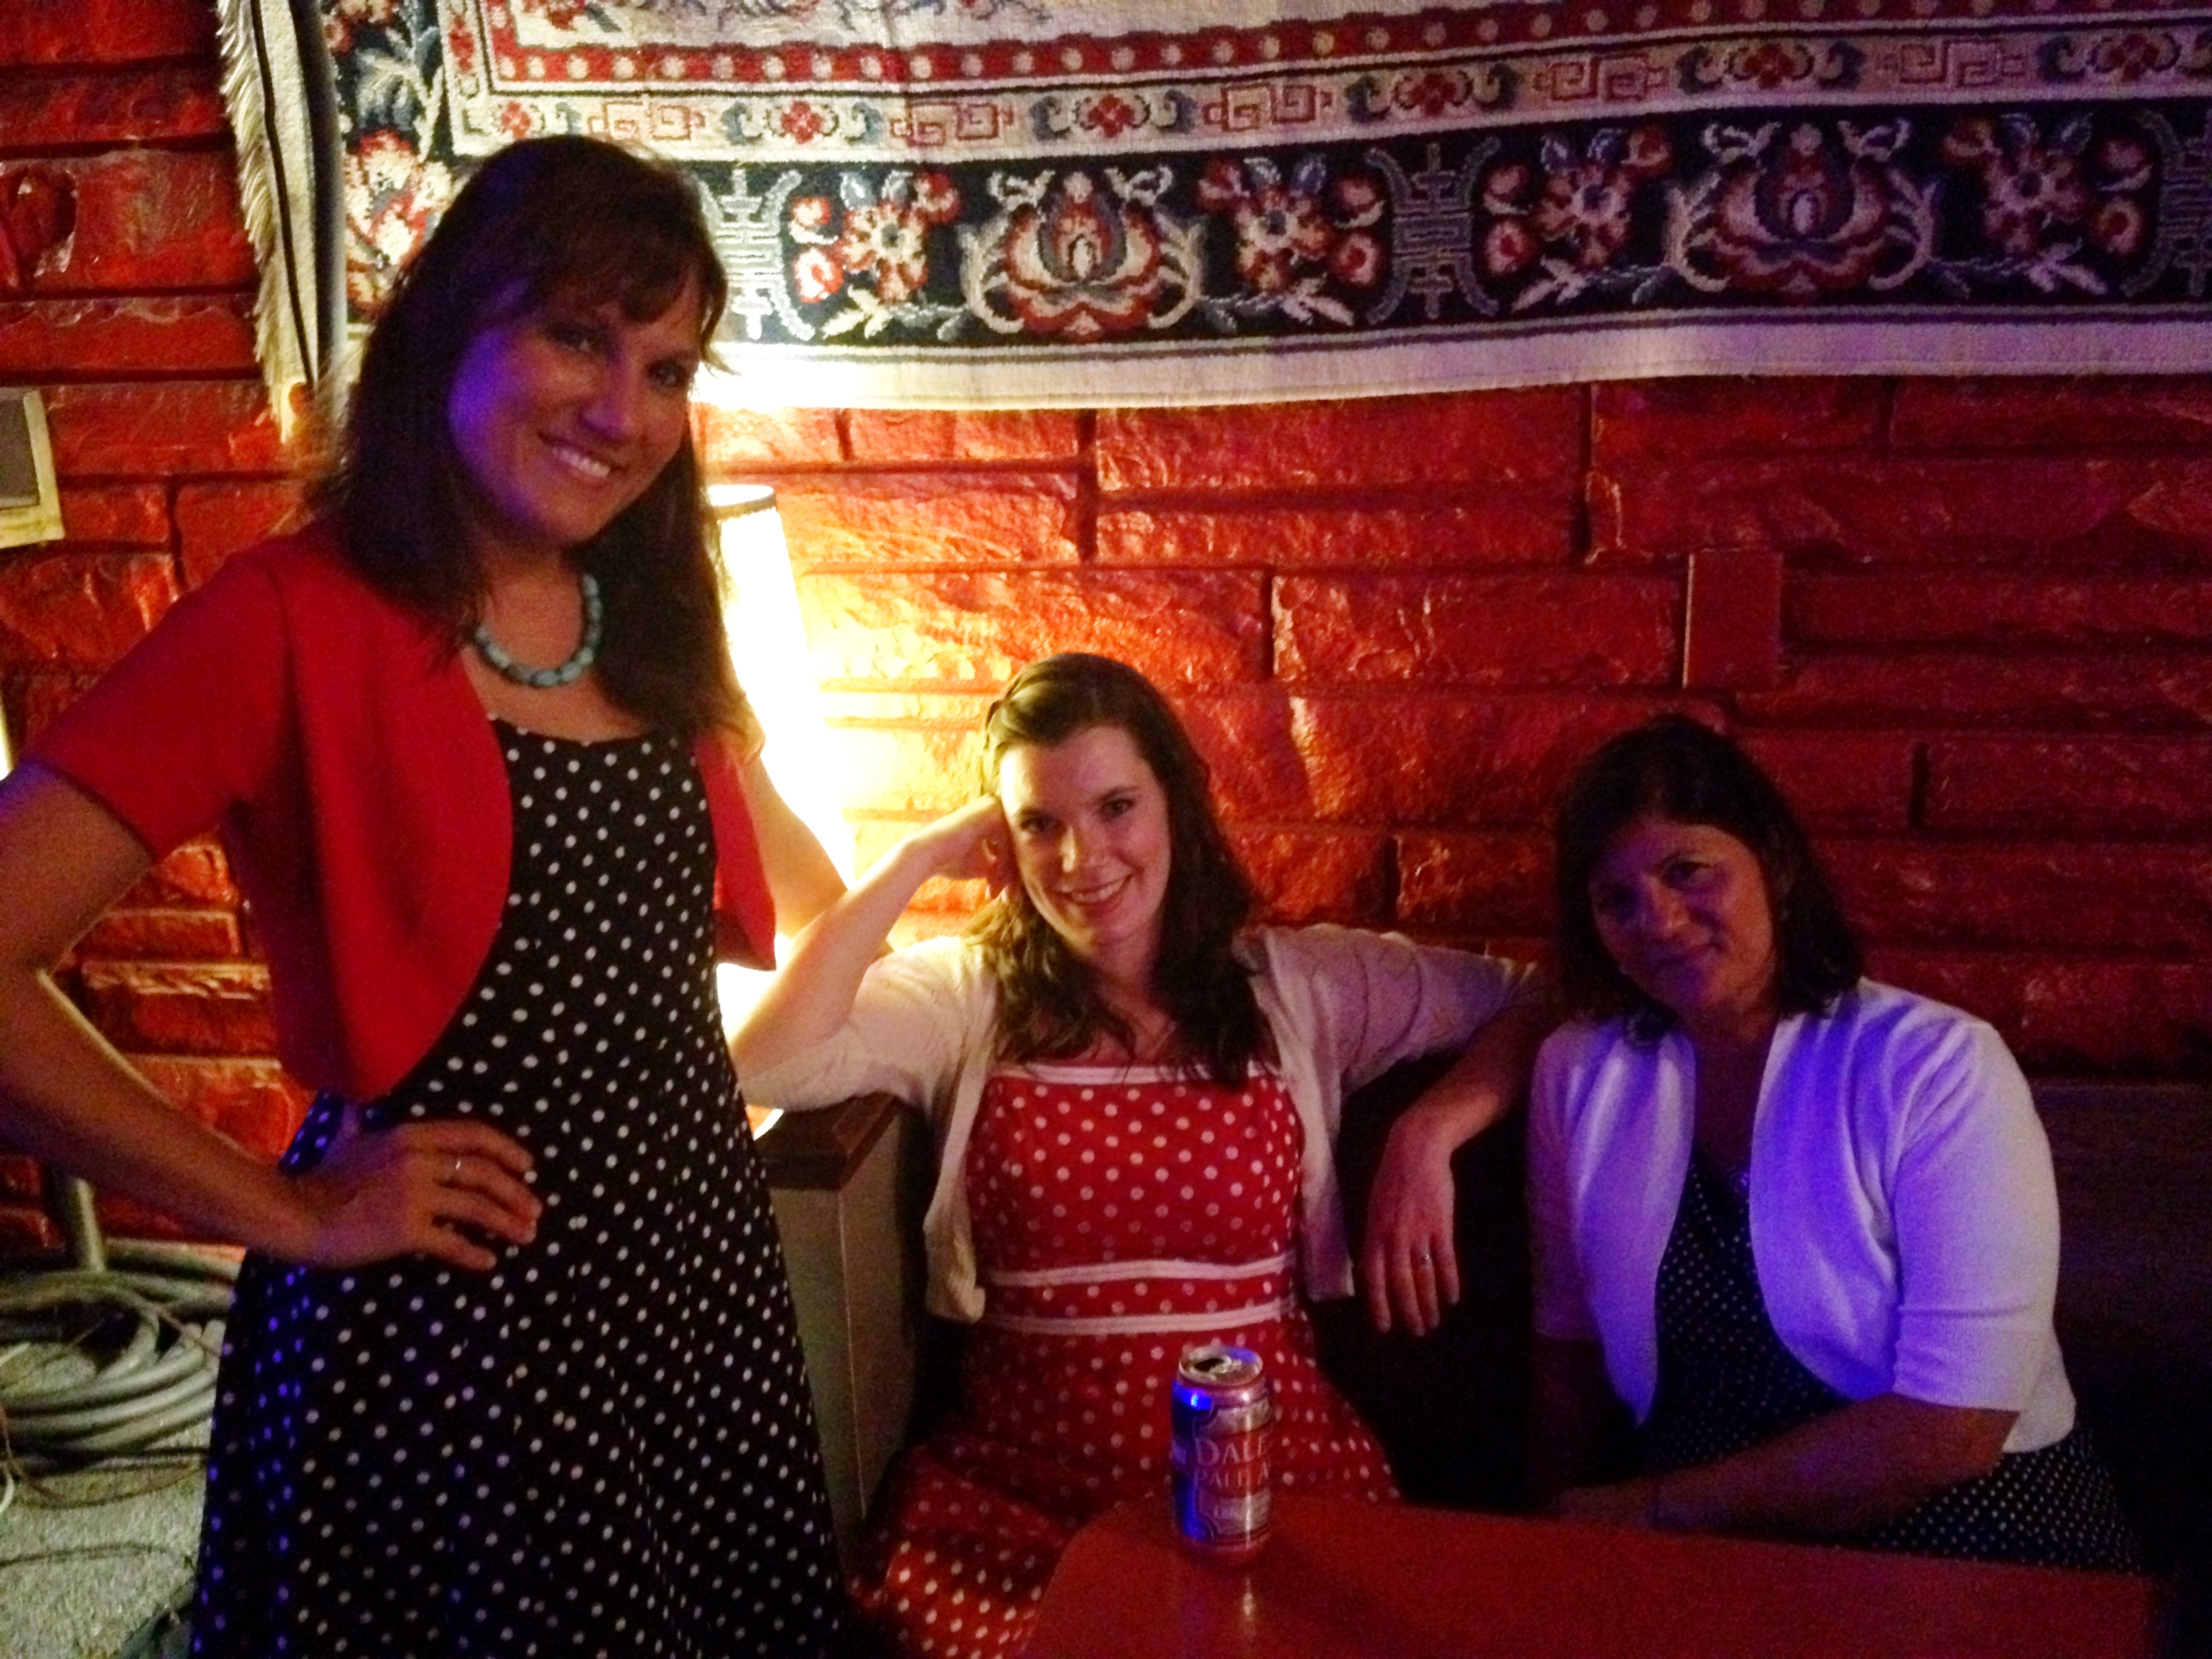 Us gals in our polka-dots at the Broad Street Café.